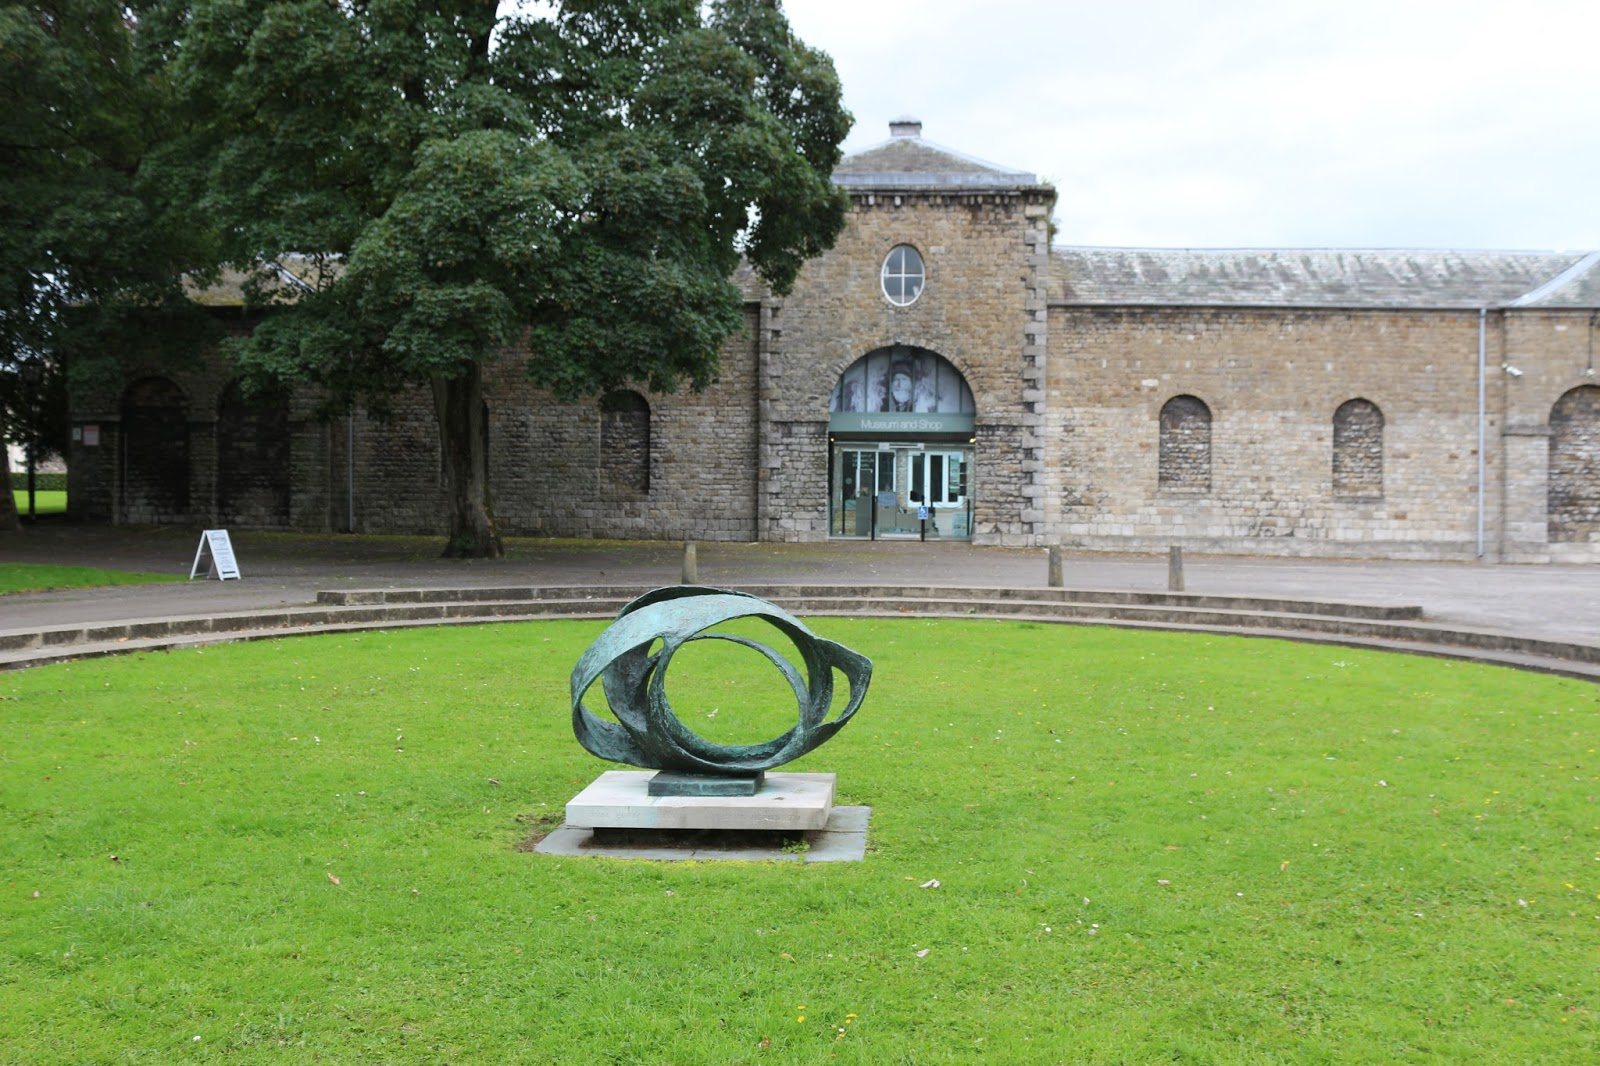 Abbott hall is kendals finest historic house and an award winning art gallery which opened in 1962 exhibitions at abbott hall showcase a variety of works